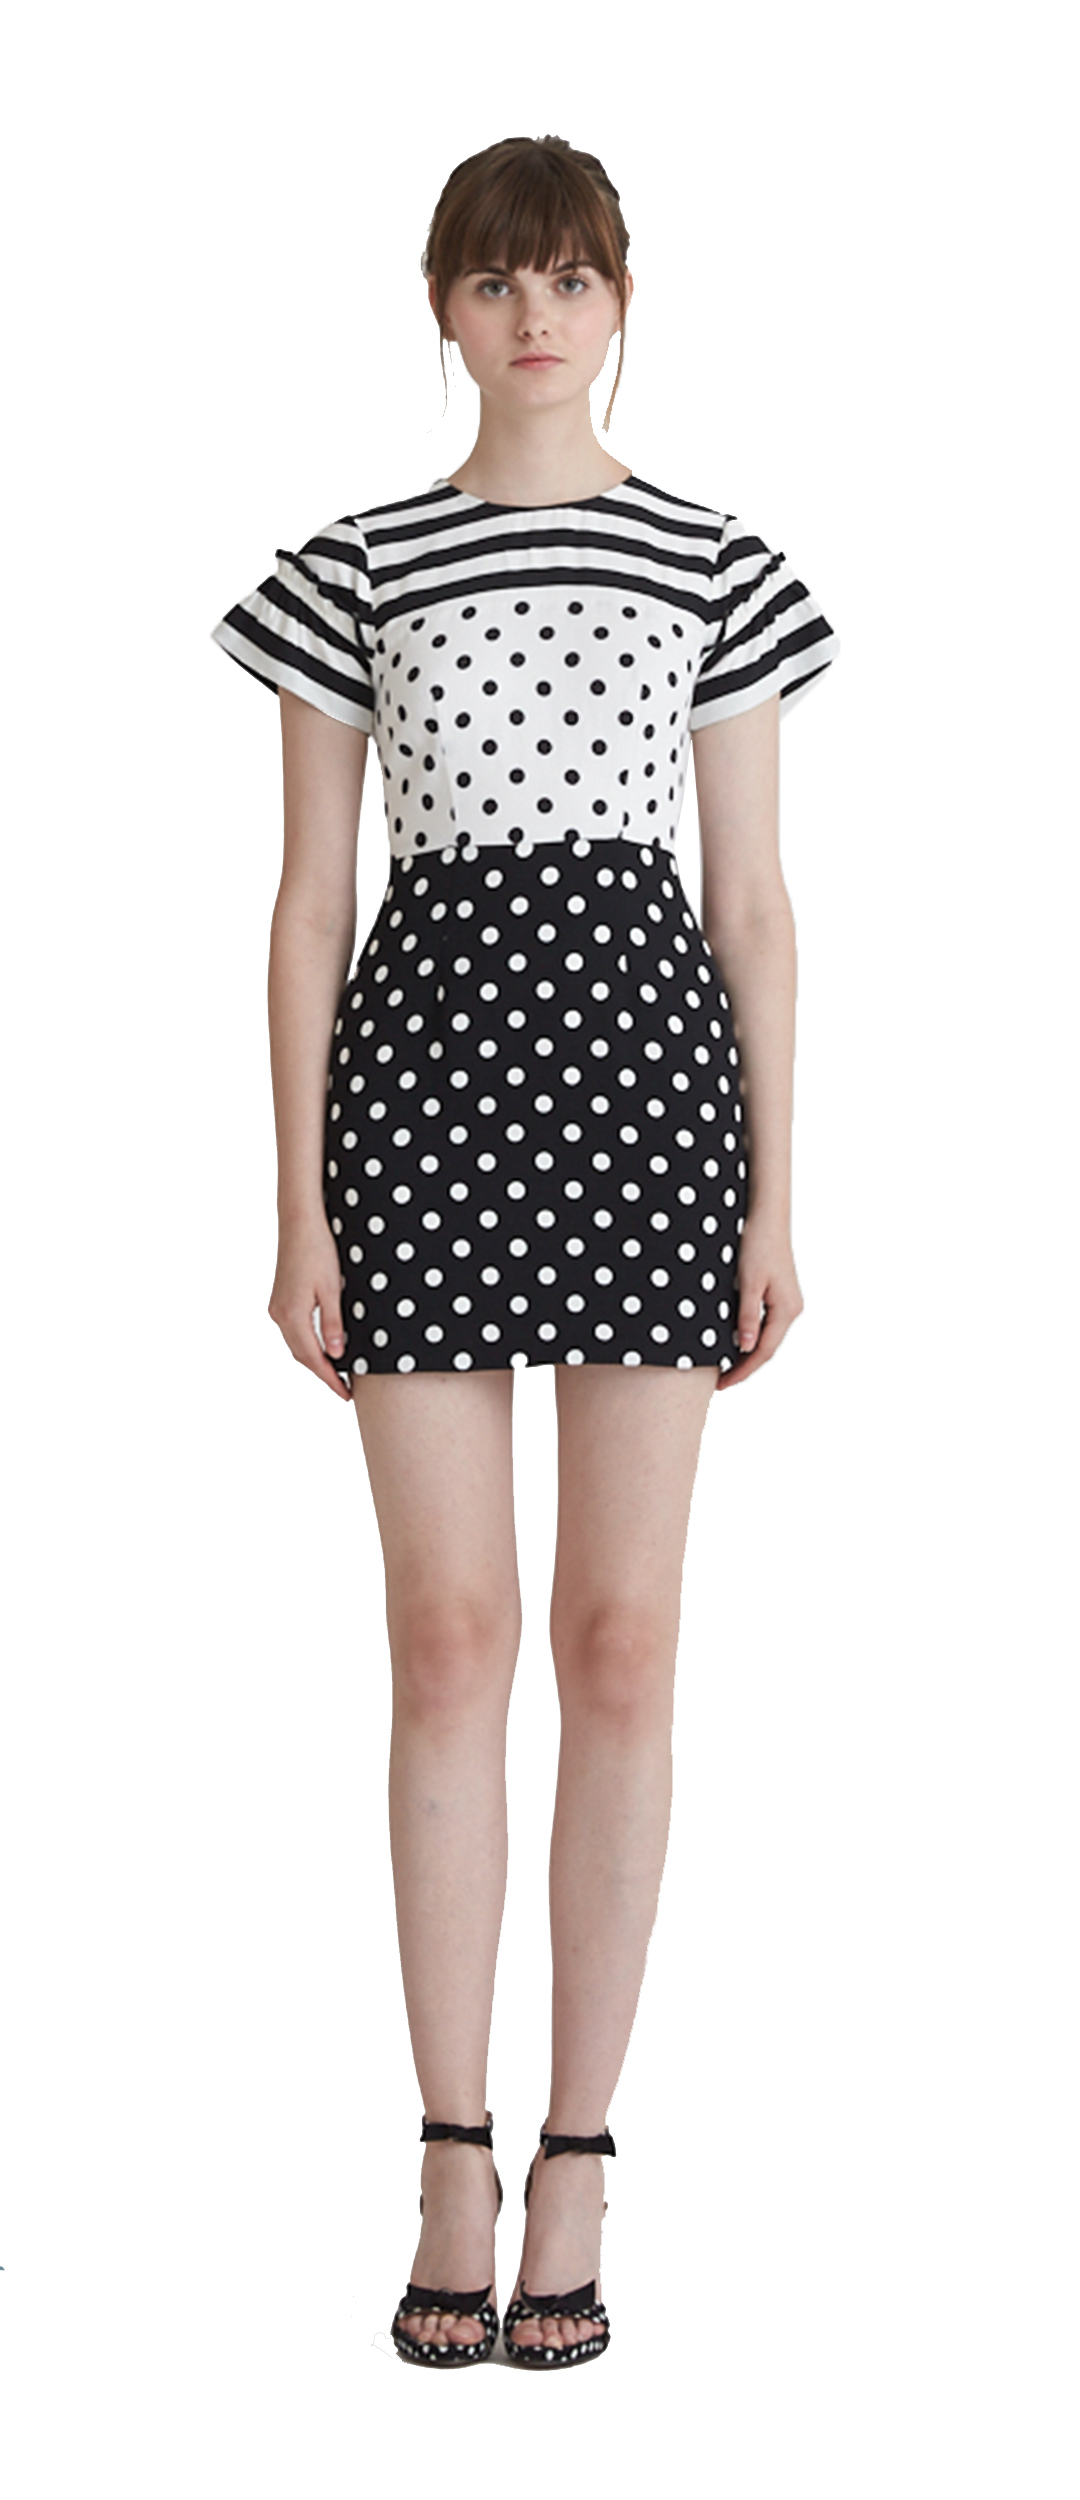 db7ce49299 JULIA POLKA STRIPE SHIFT DRESS  269.00